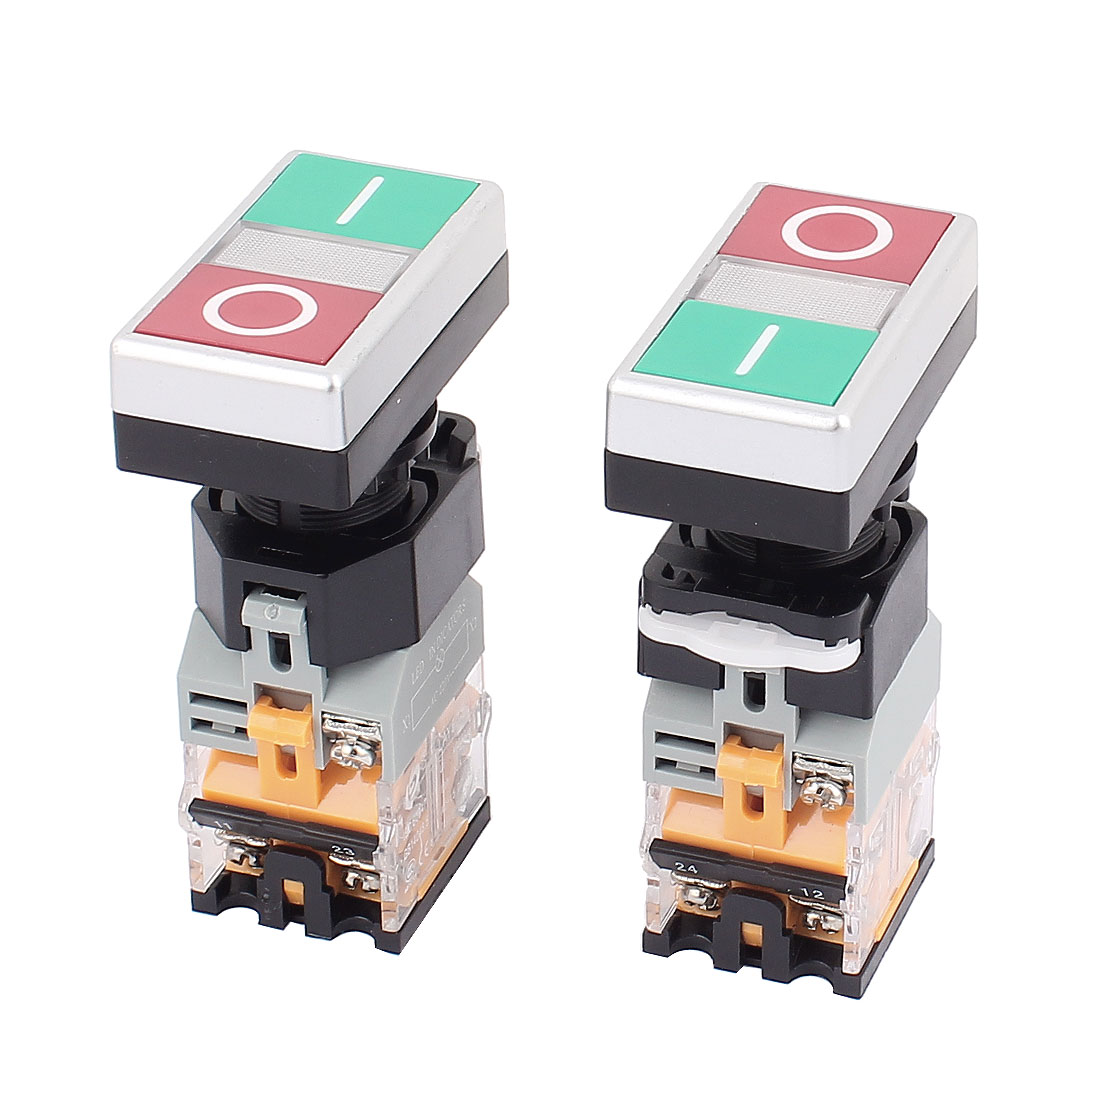 660V 10A Momentary NO/OFF 2 Buttons Controlling Push Button Power Switch 6PCS